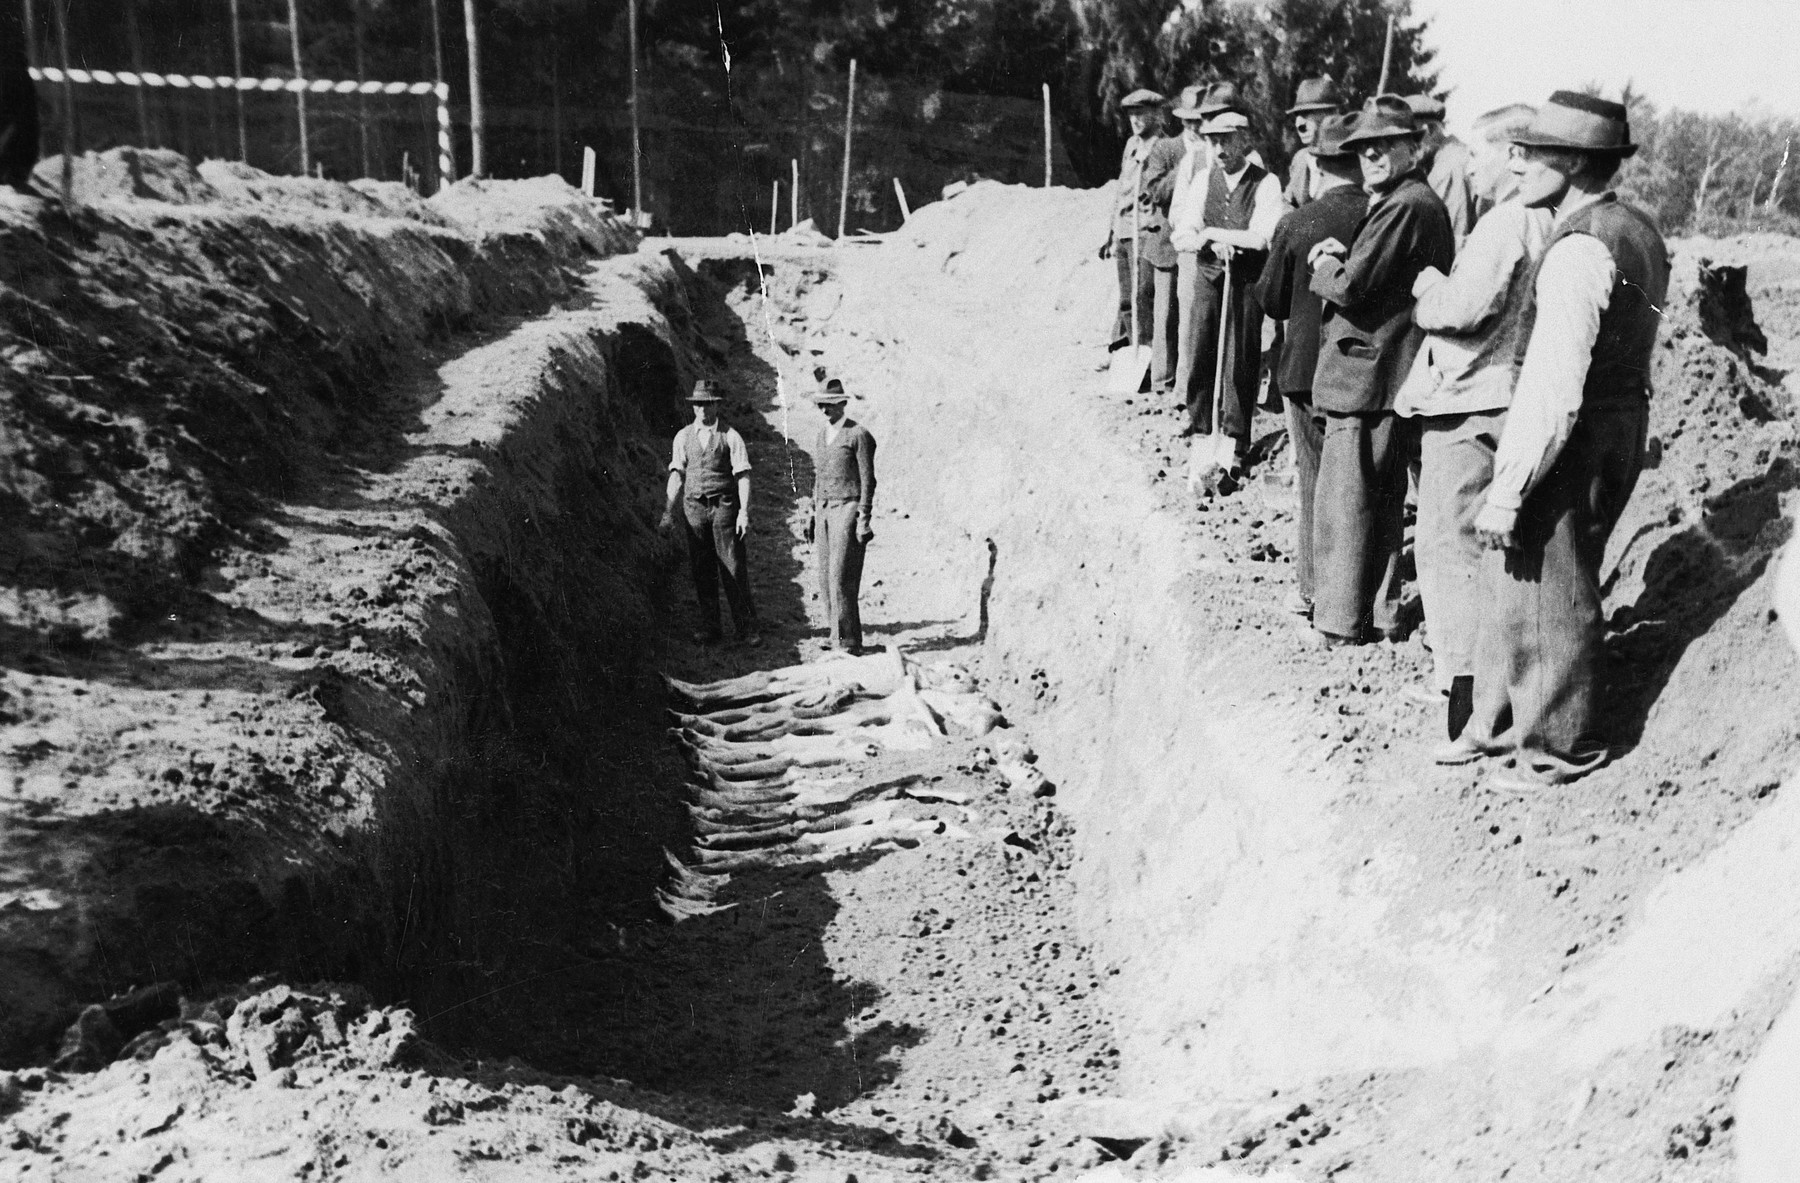 Austrian civilians are forced to bury corpses in a mass grave in the Mauthausen concentration camp.